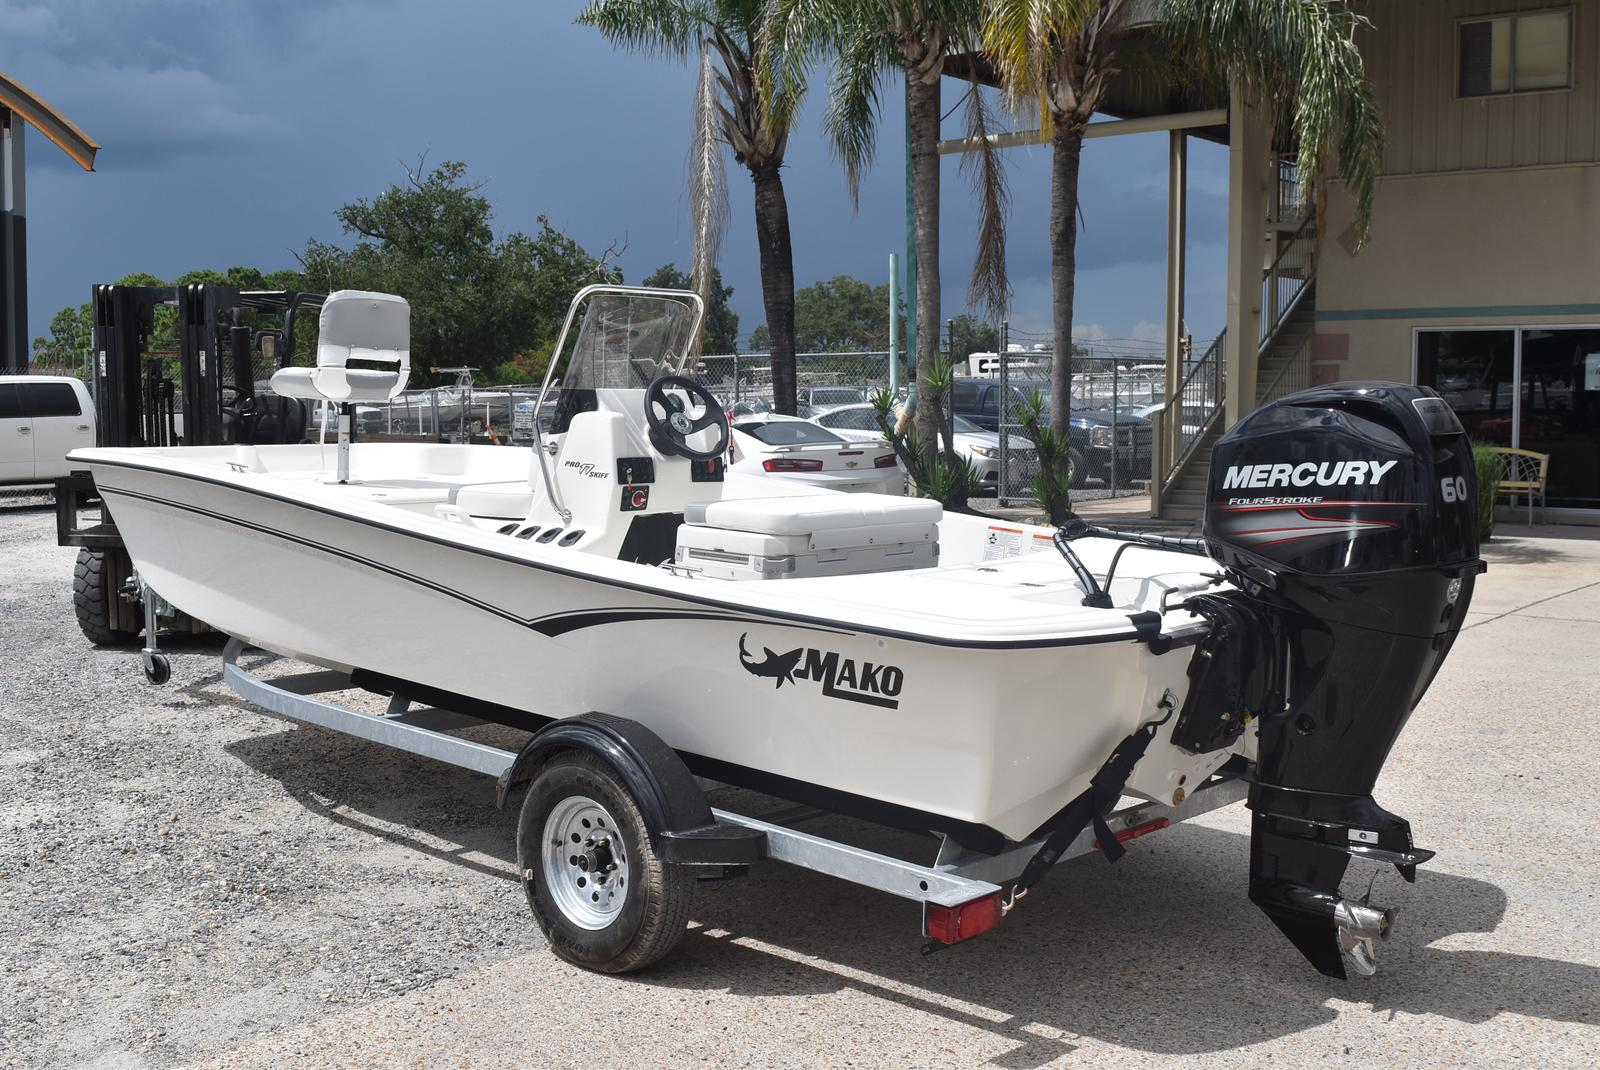 2020 Mako boat for sale, model of the boat is Pro Skiff 17, 75 ELPT & Image # 218 of 702